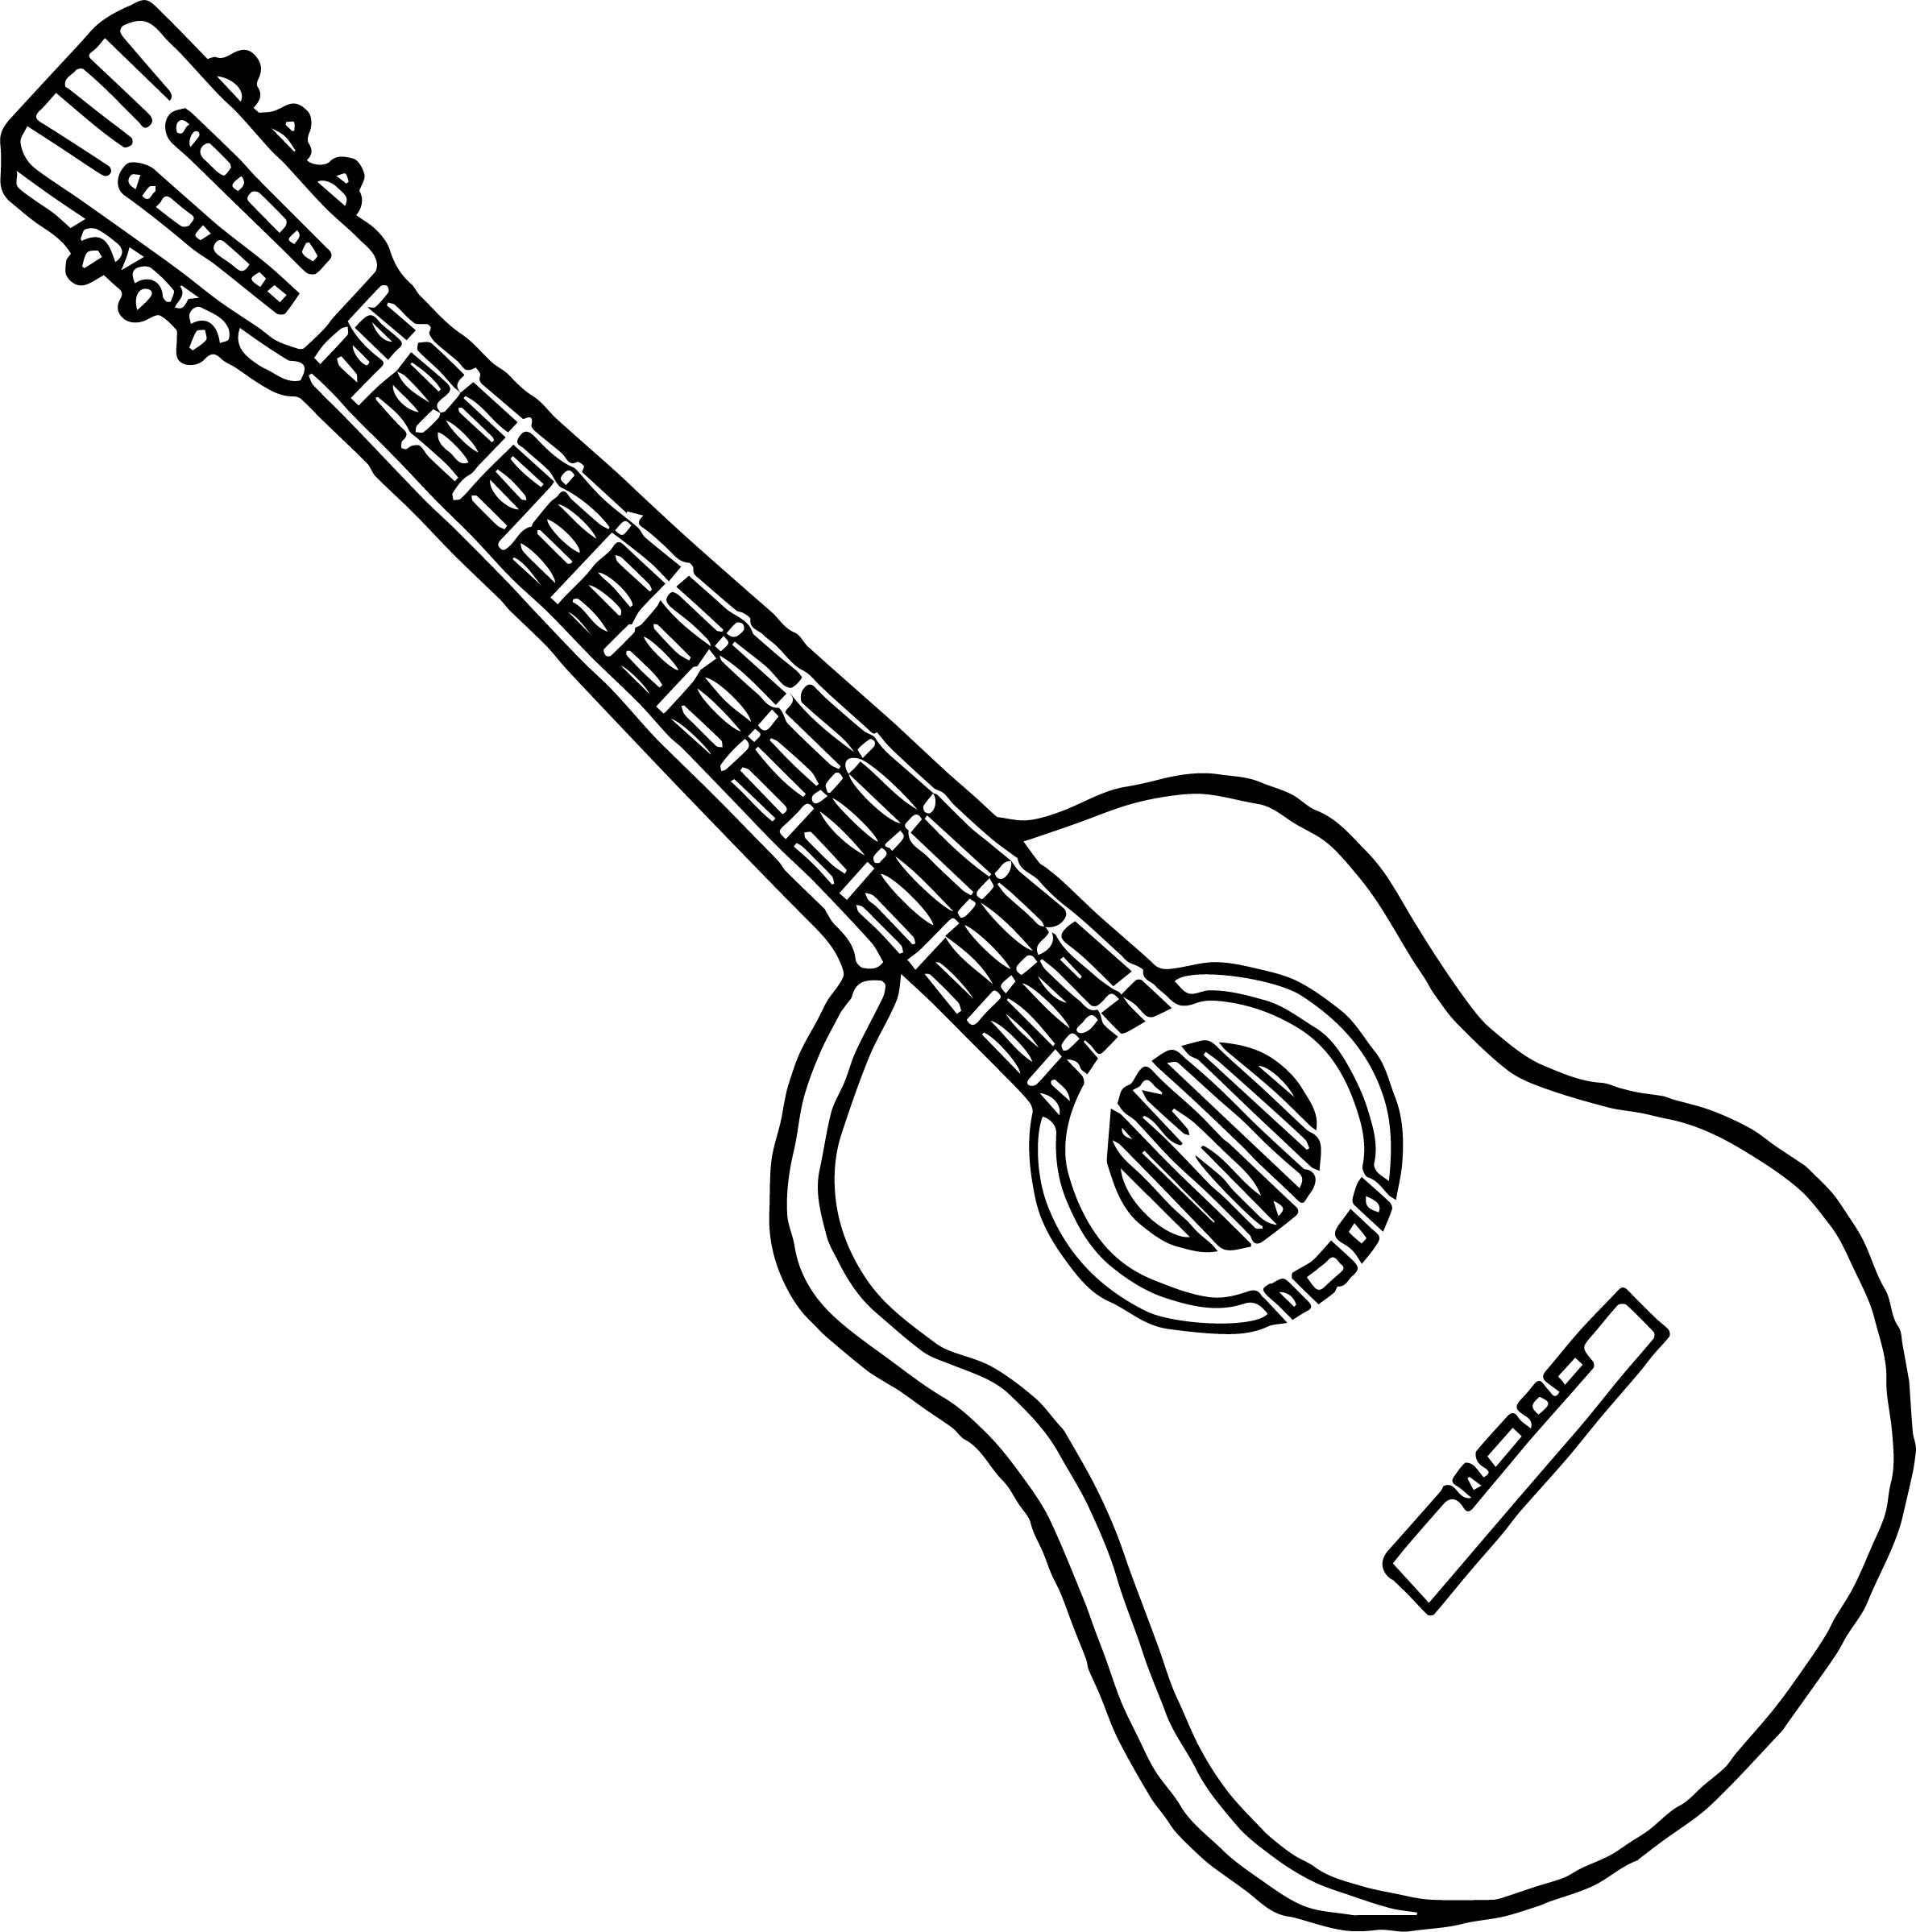 Guitar line drawing at getdrawings free for personal use guitar line drawing 20 guitar line drawing